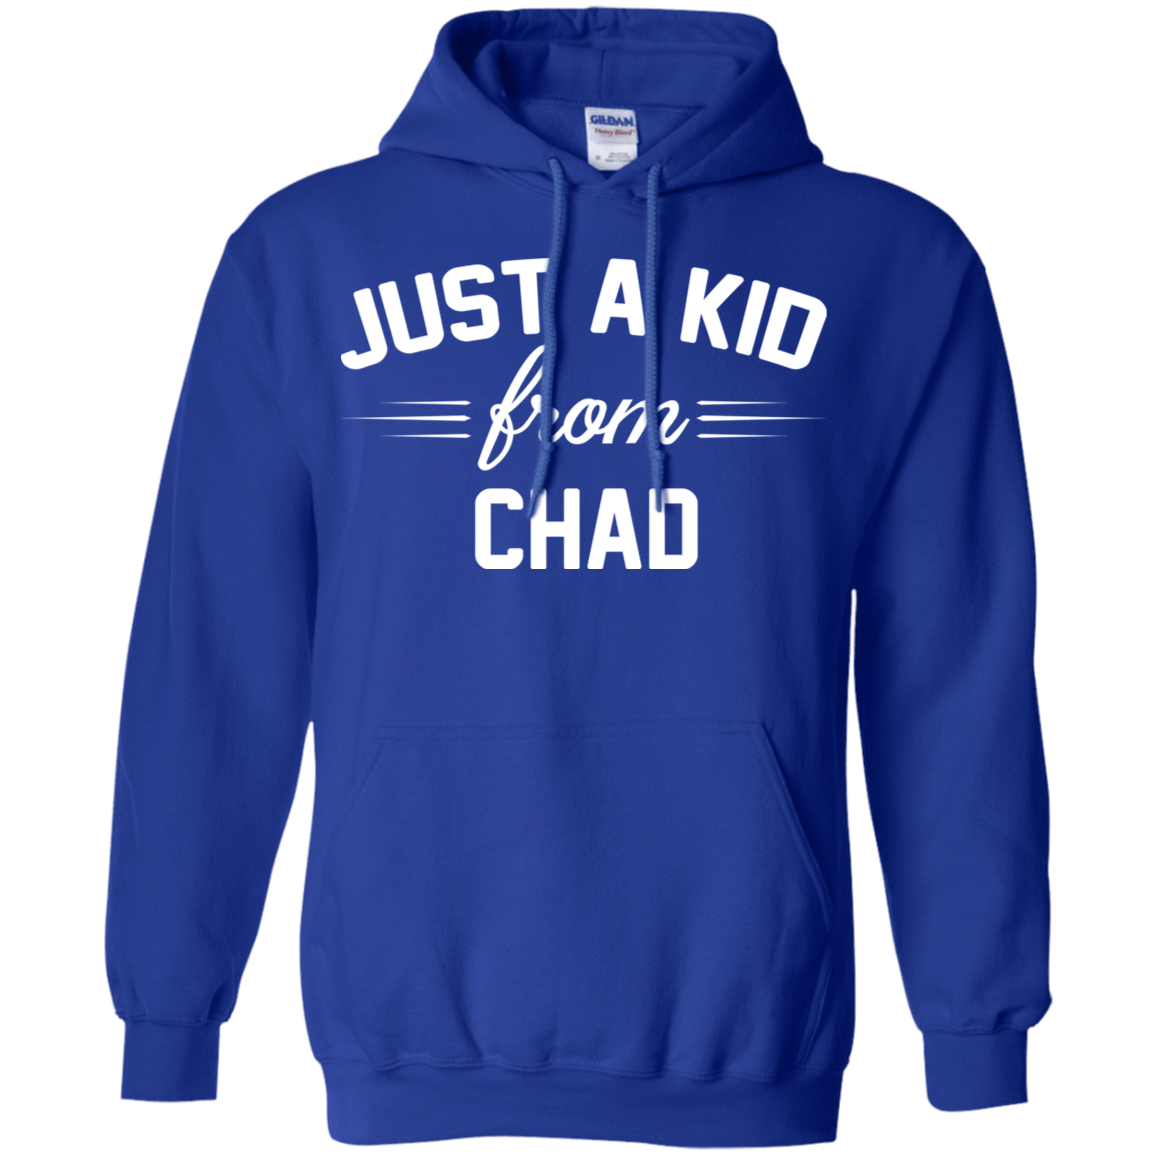 Just a Kid Store | Chad T-Shirts, Hoodie, Tank 541-4765-72092766-23175 - Tee Ript